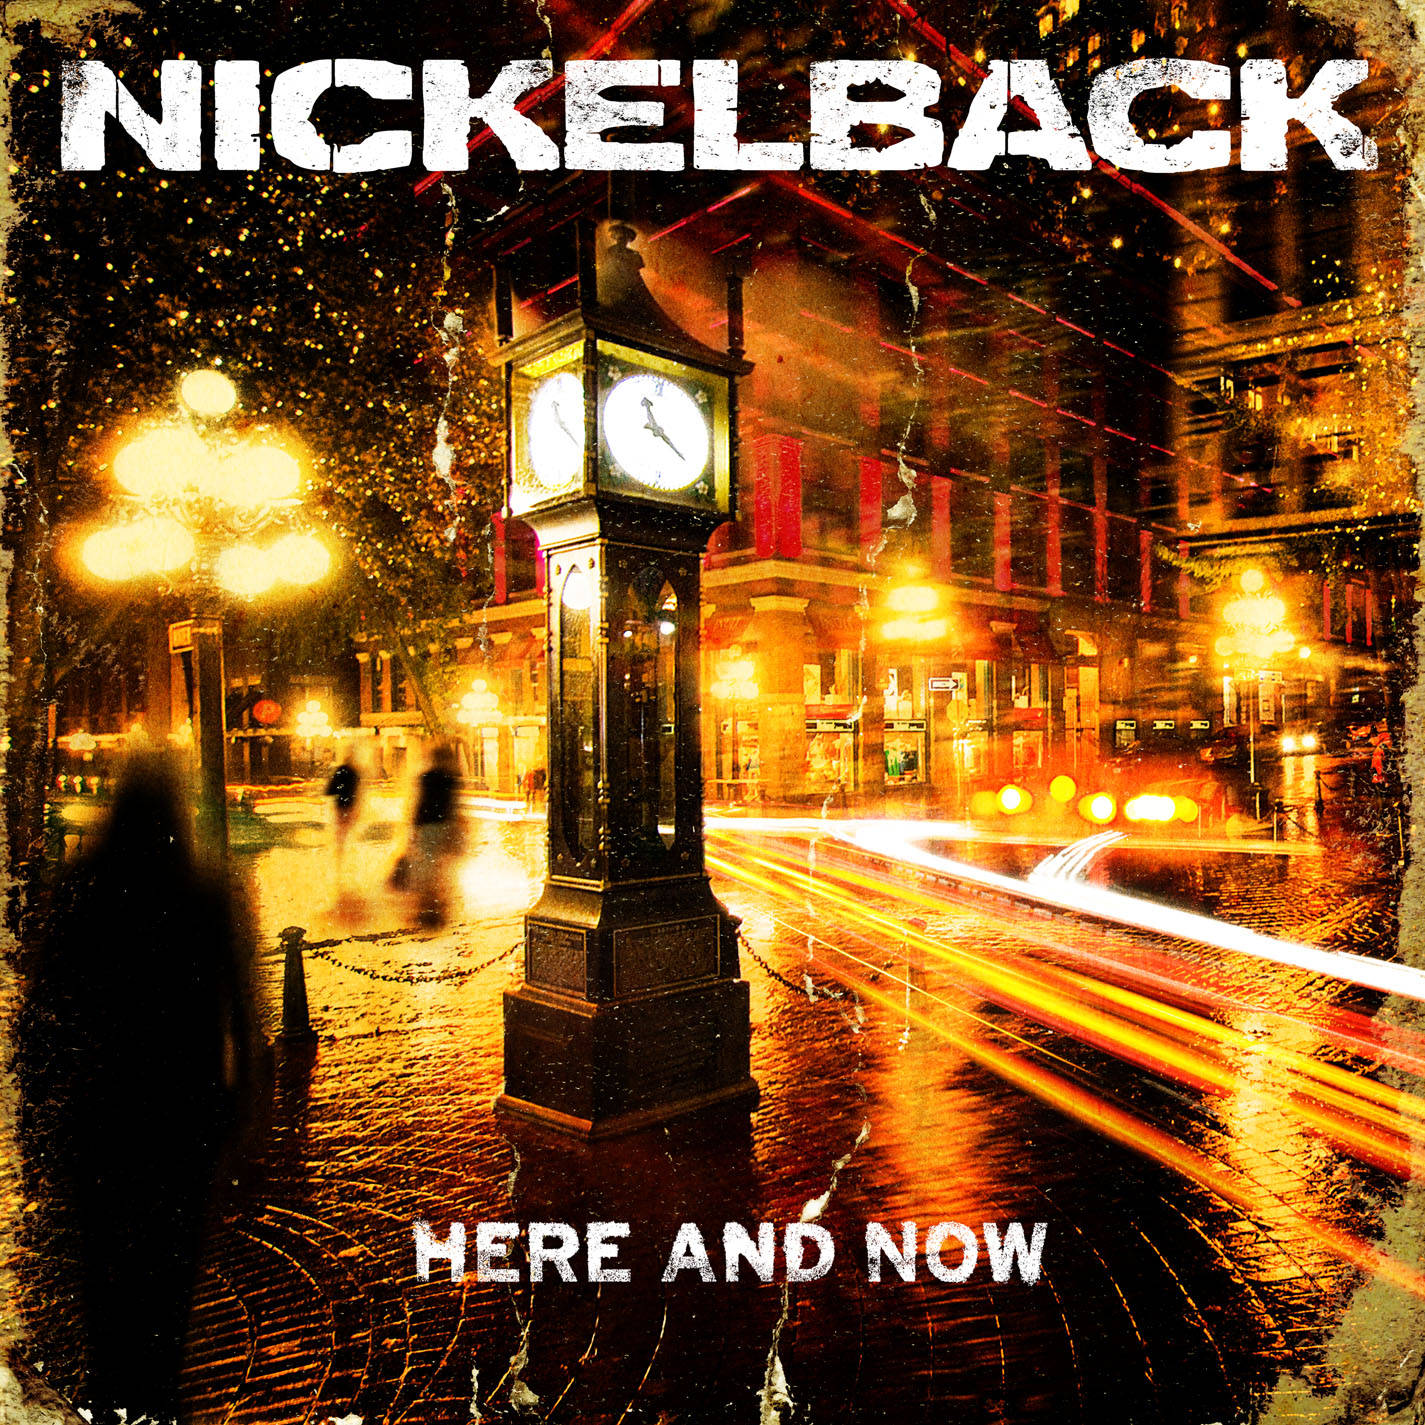 STATE NICKELBACK THE BAIXAR CD